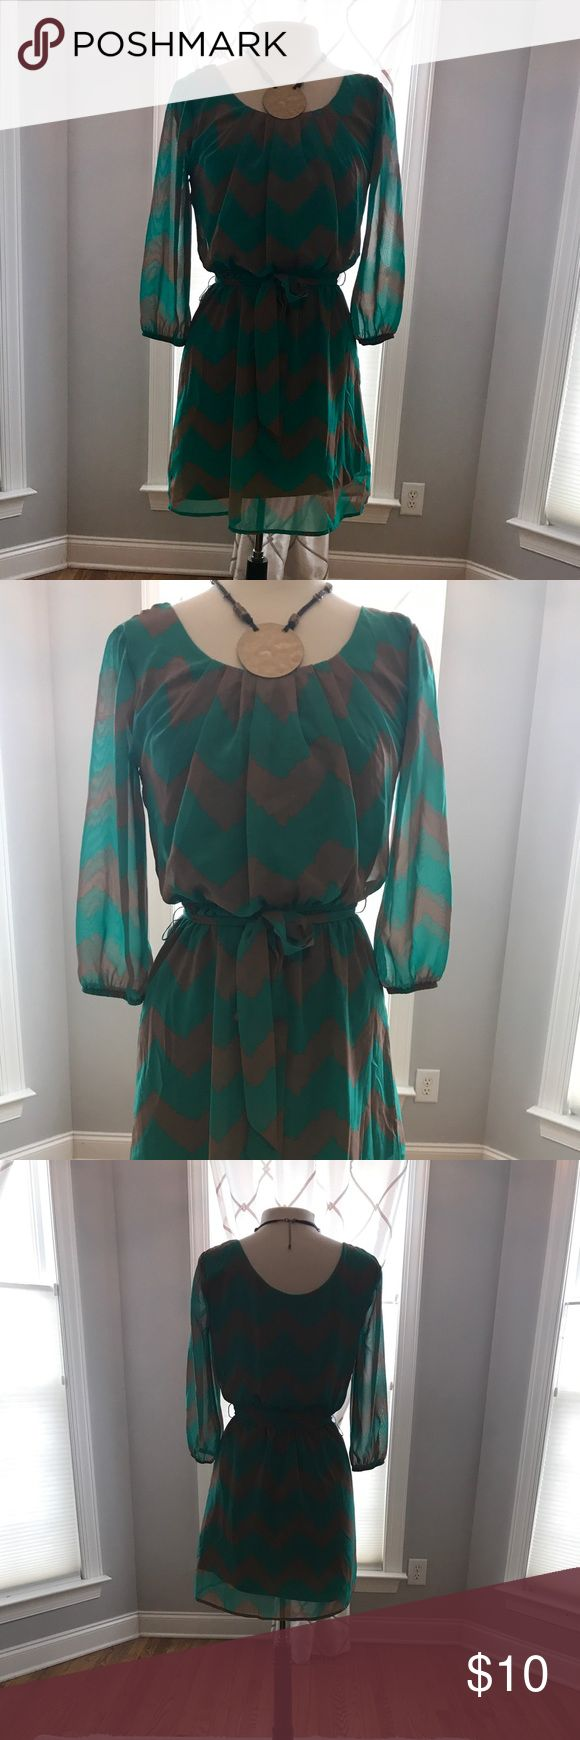 Chevron Print Dress by Lily Rose Super cute green and brown chevron print dress with tie at waist.   Sleeves are sheer.   Size small  Great preowned condition. All reasonable offers accepted. Bundle and save! Lily Rose Dresses